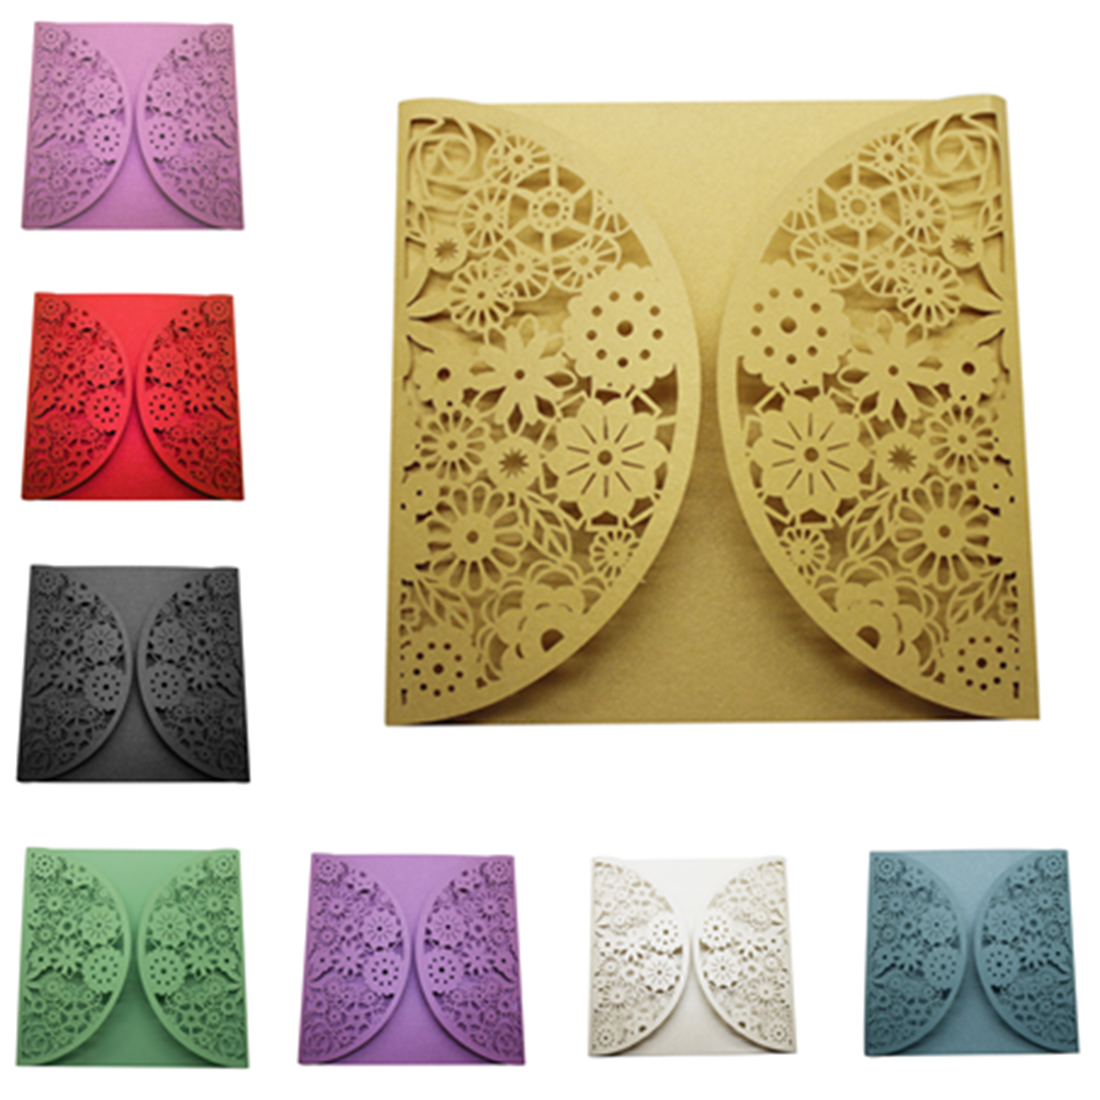 Creative 10Pcs Delicate Carved Pattern Romantic Wedding Party Invitation Card For Wedding Business Party Birthday 1 design laser cut white elegant pattern west cowboy style vintage wedding invitations card kit blank paper printing invitation